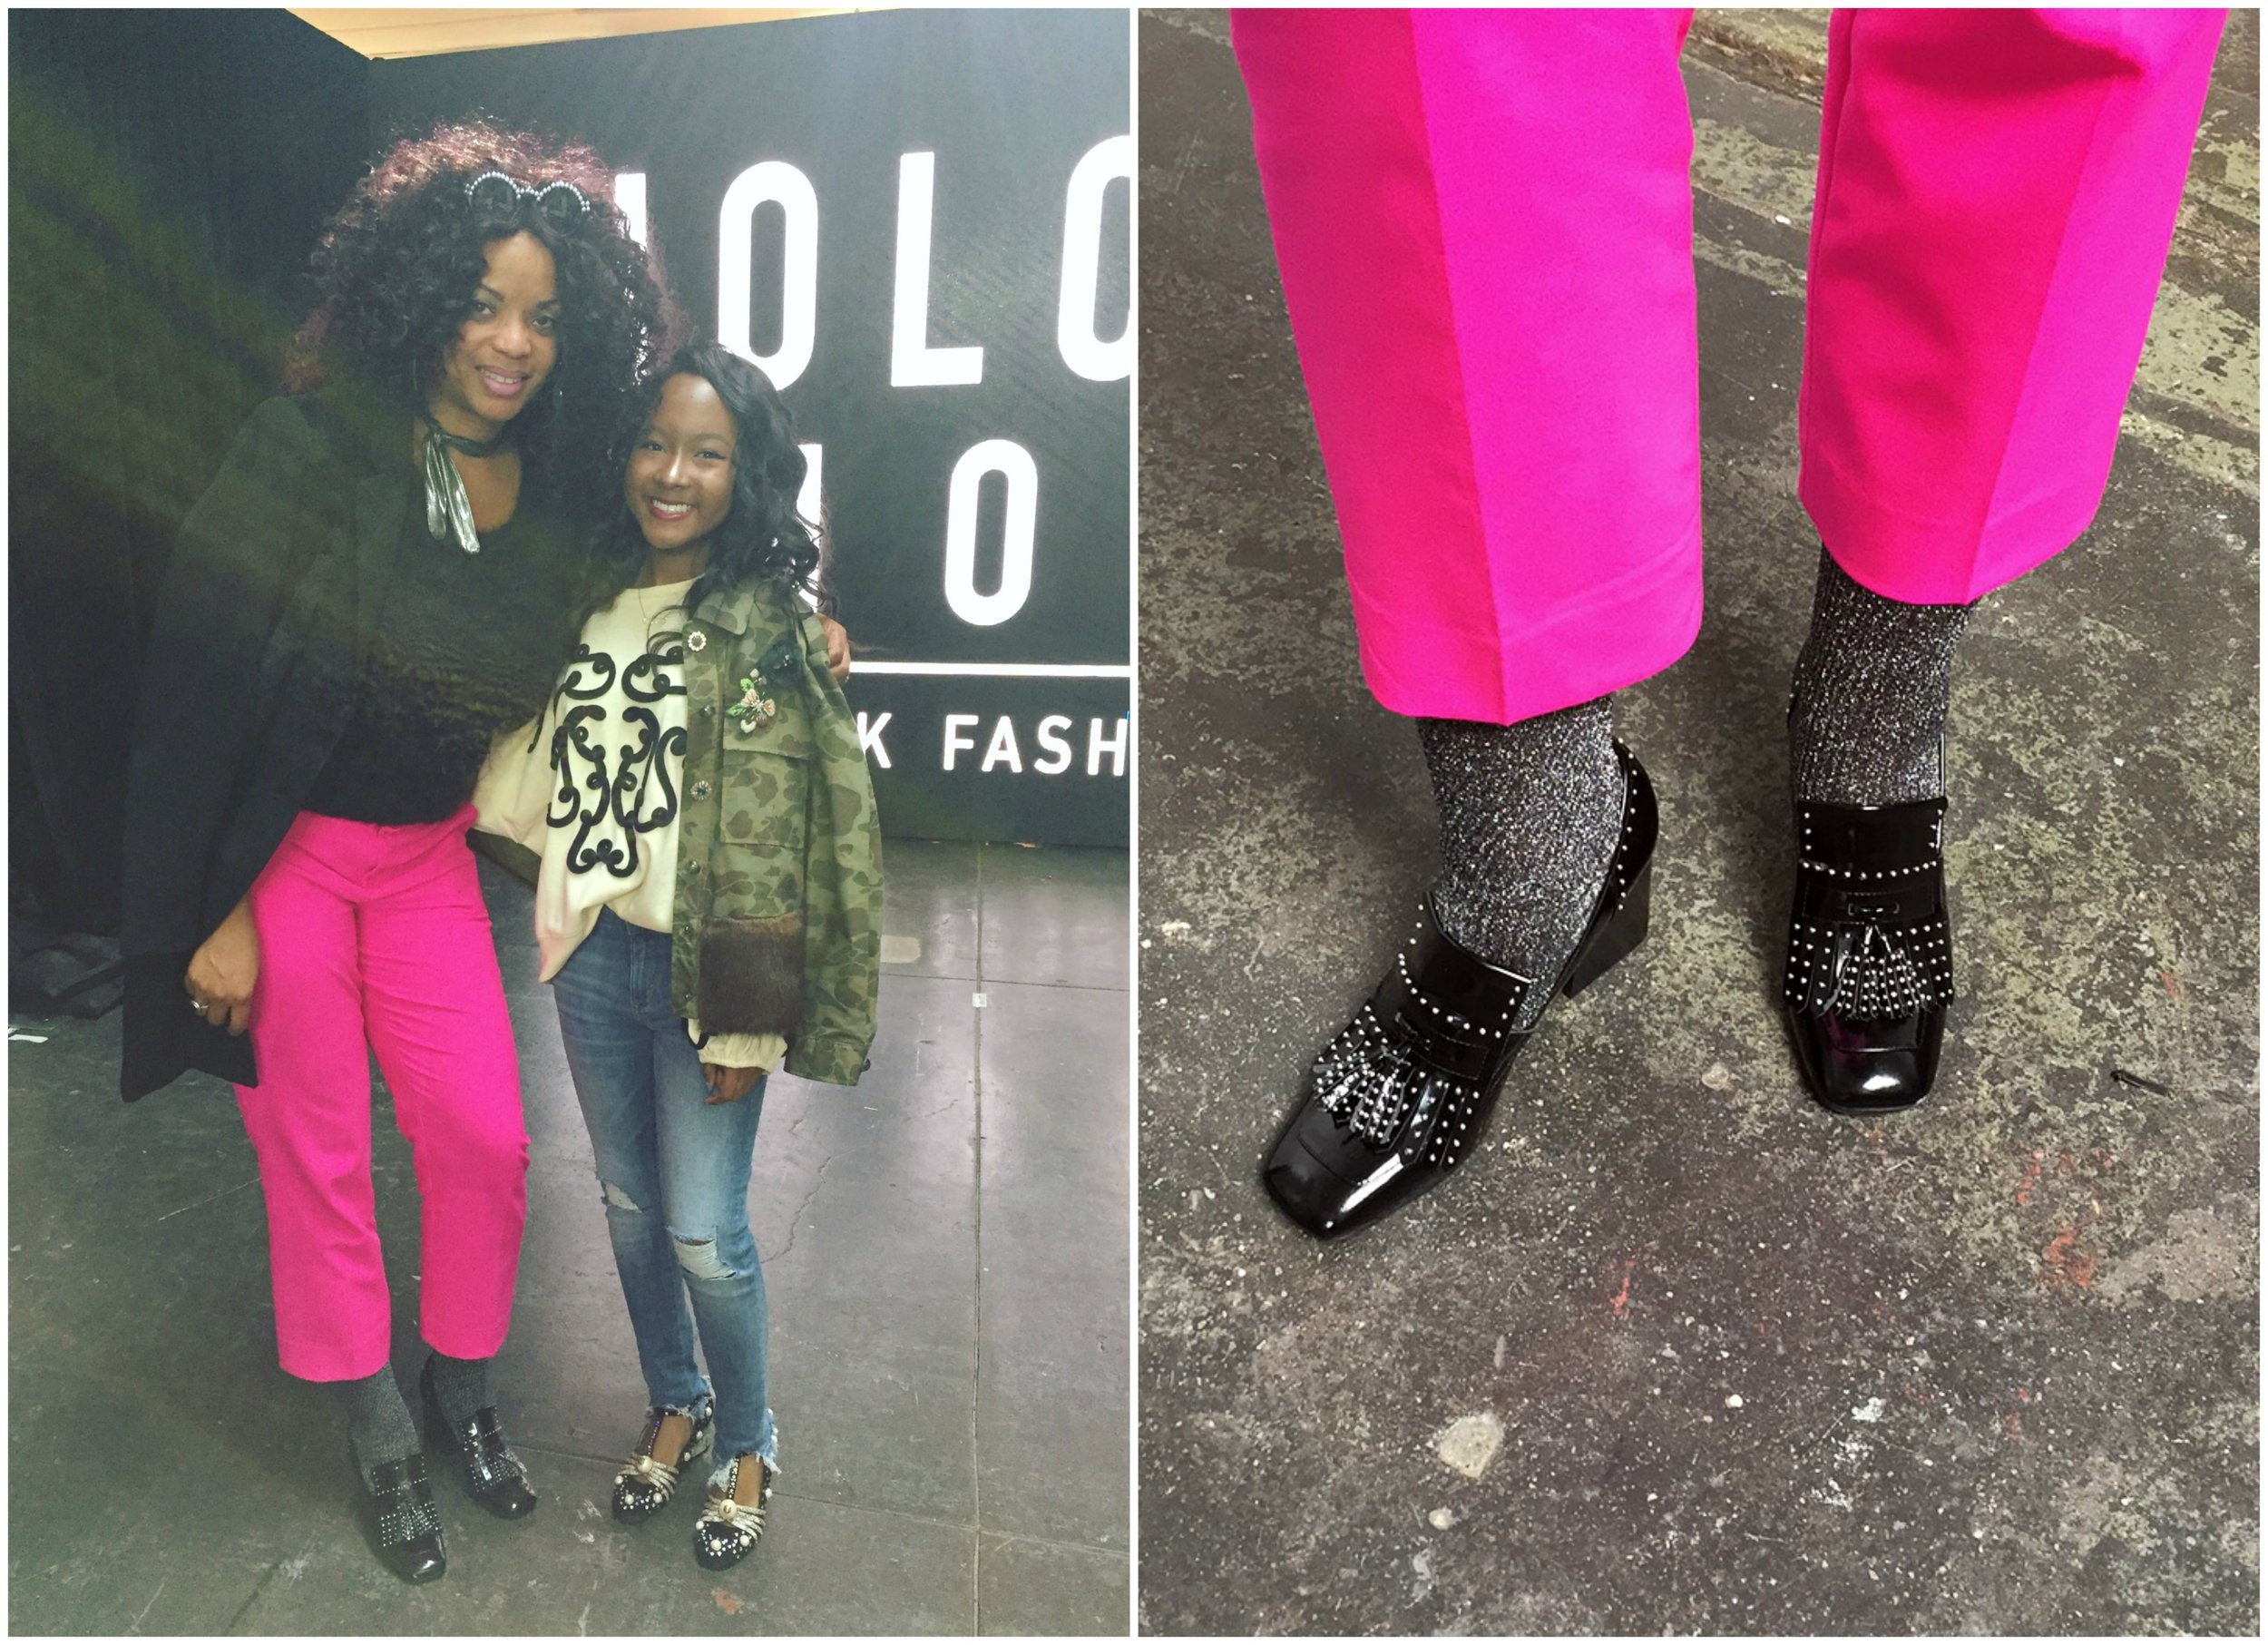 "This is me with actress Donshea Hopkins ""Raina"" from the hit series  Power  on STARZ! The Gucci flats Donshea was wearing were AMAZE btw!"